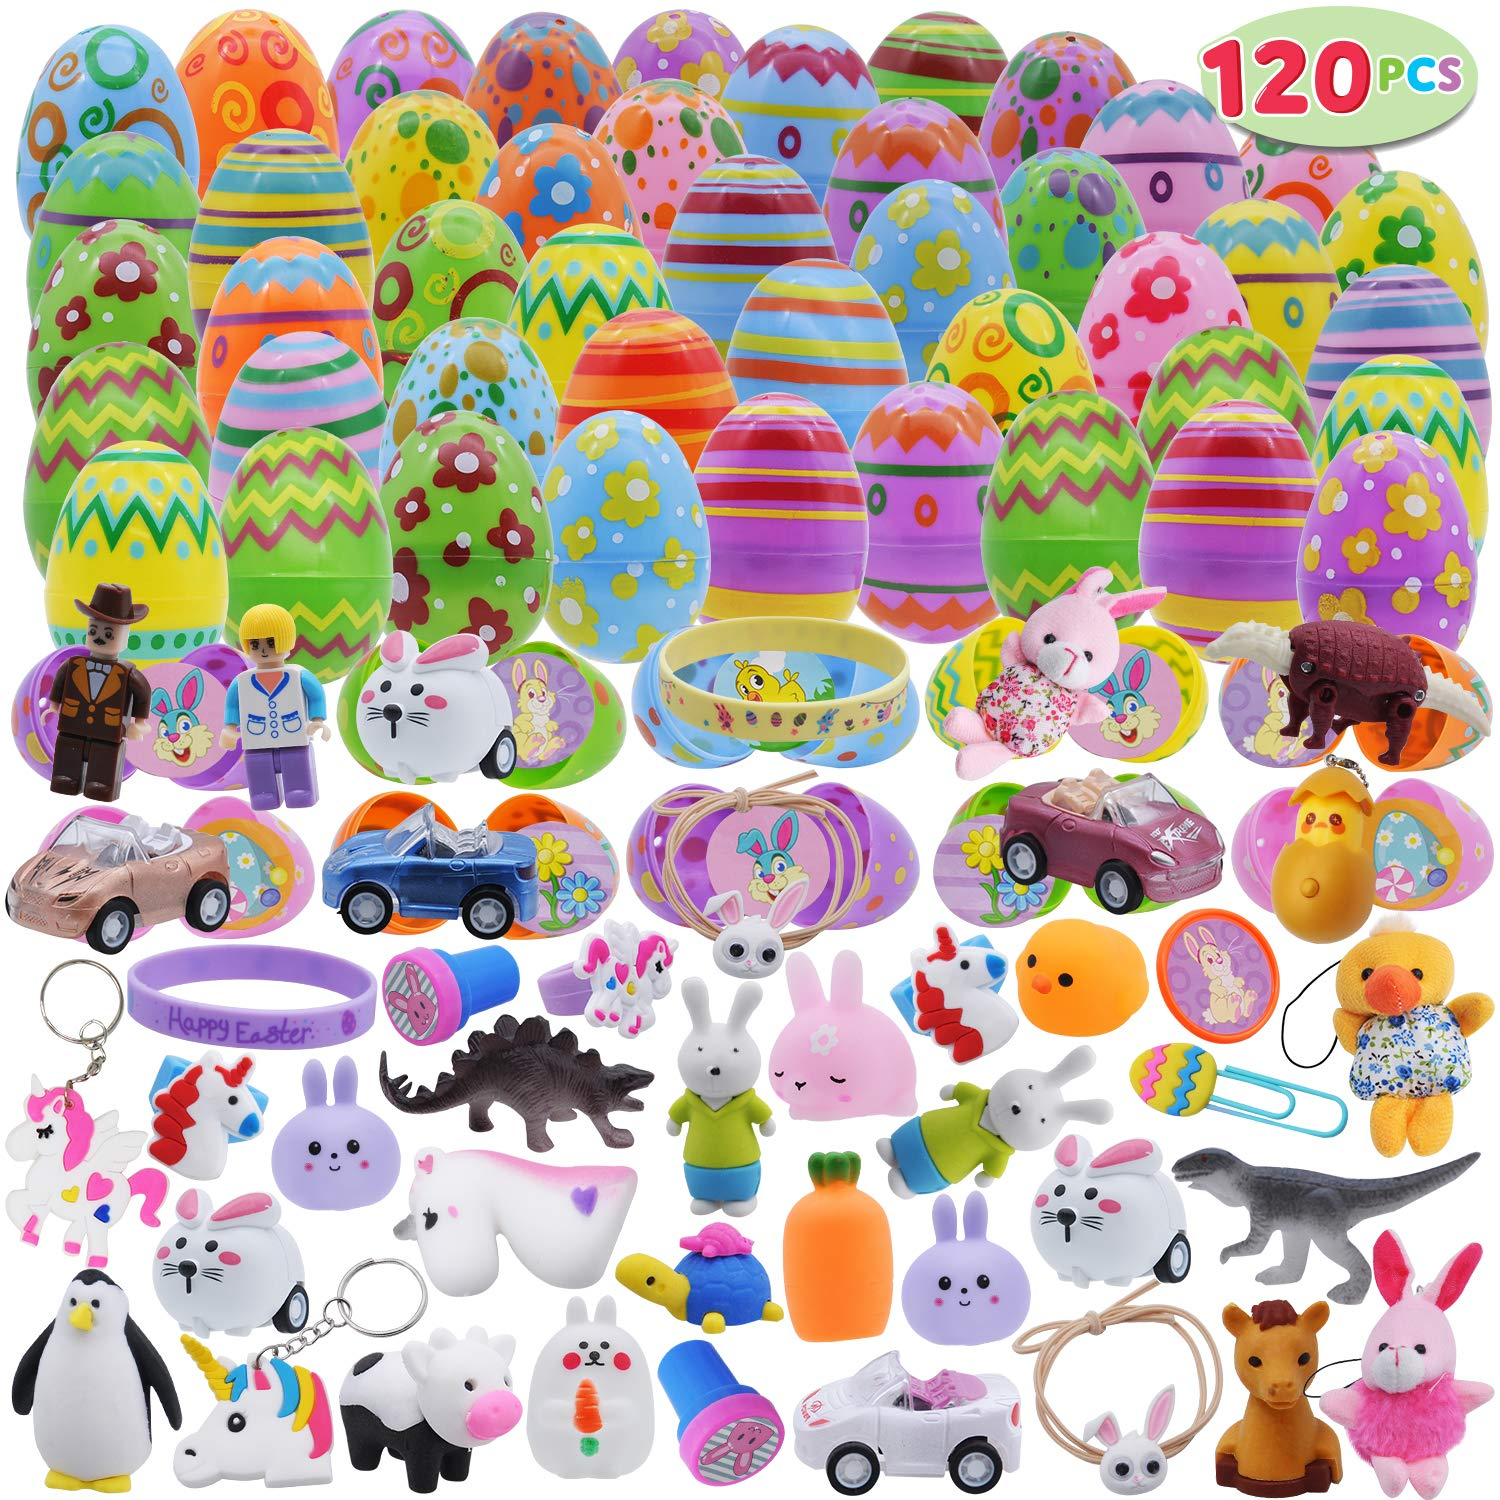 120 Pcs Prefilled Premium Printed Easter Eggs